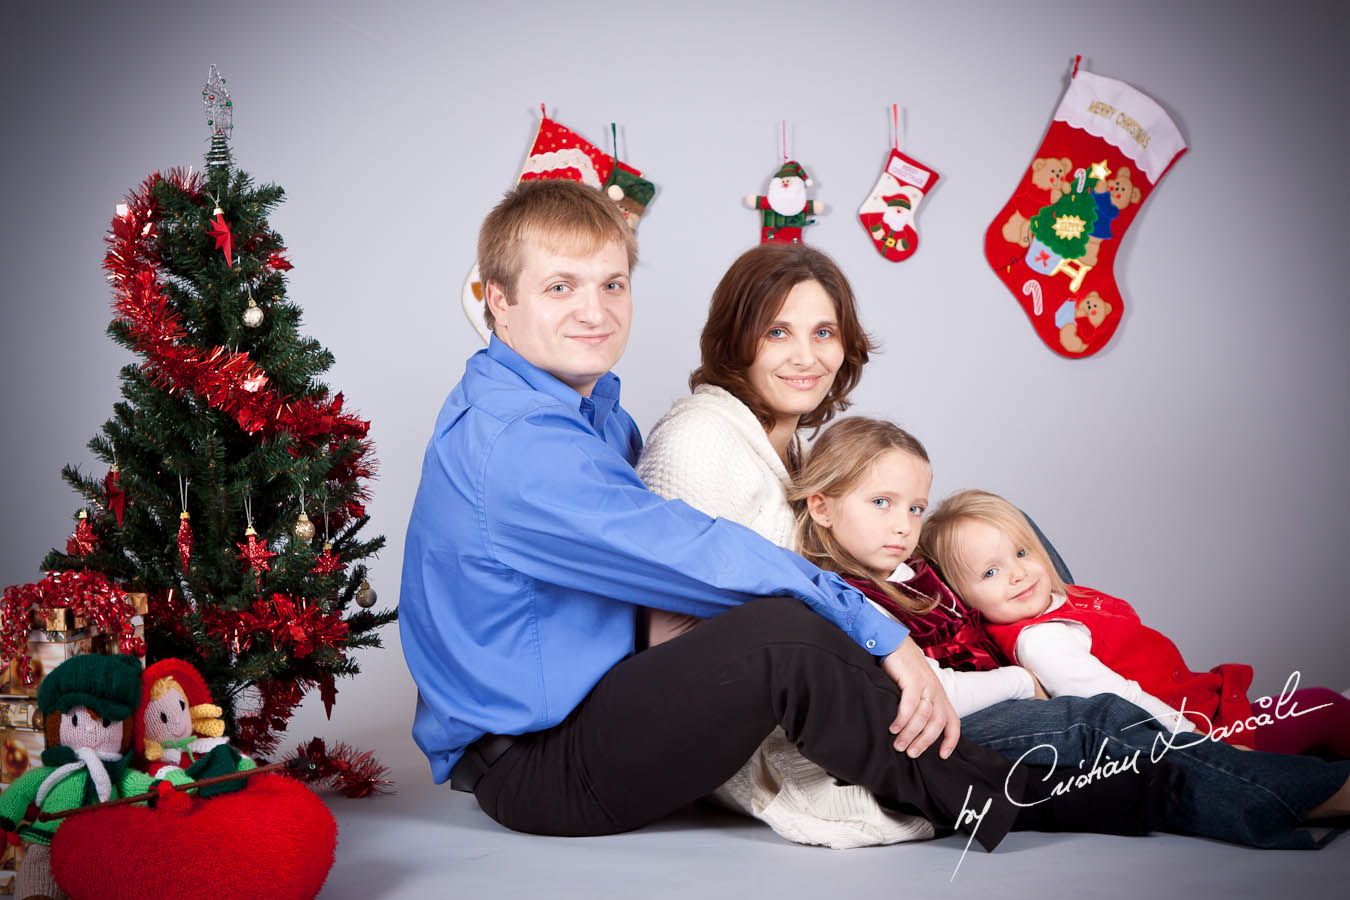 Dicusara Family Christmas Photo Session